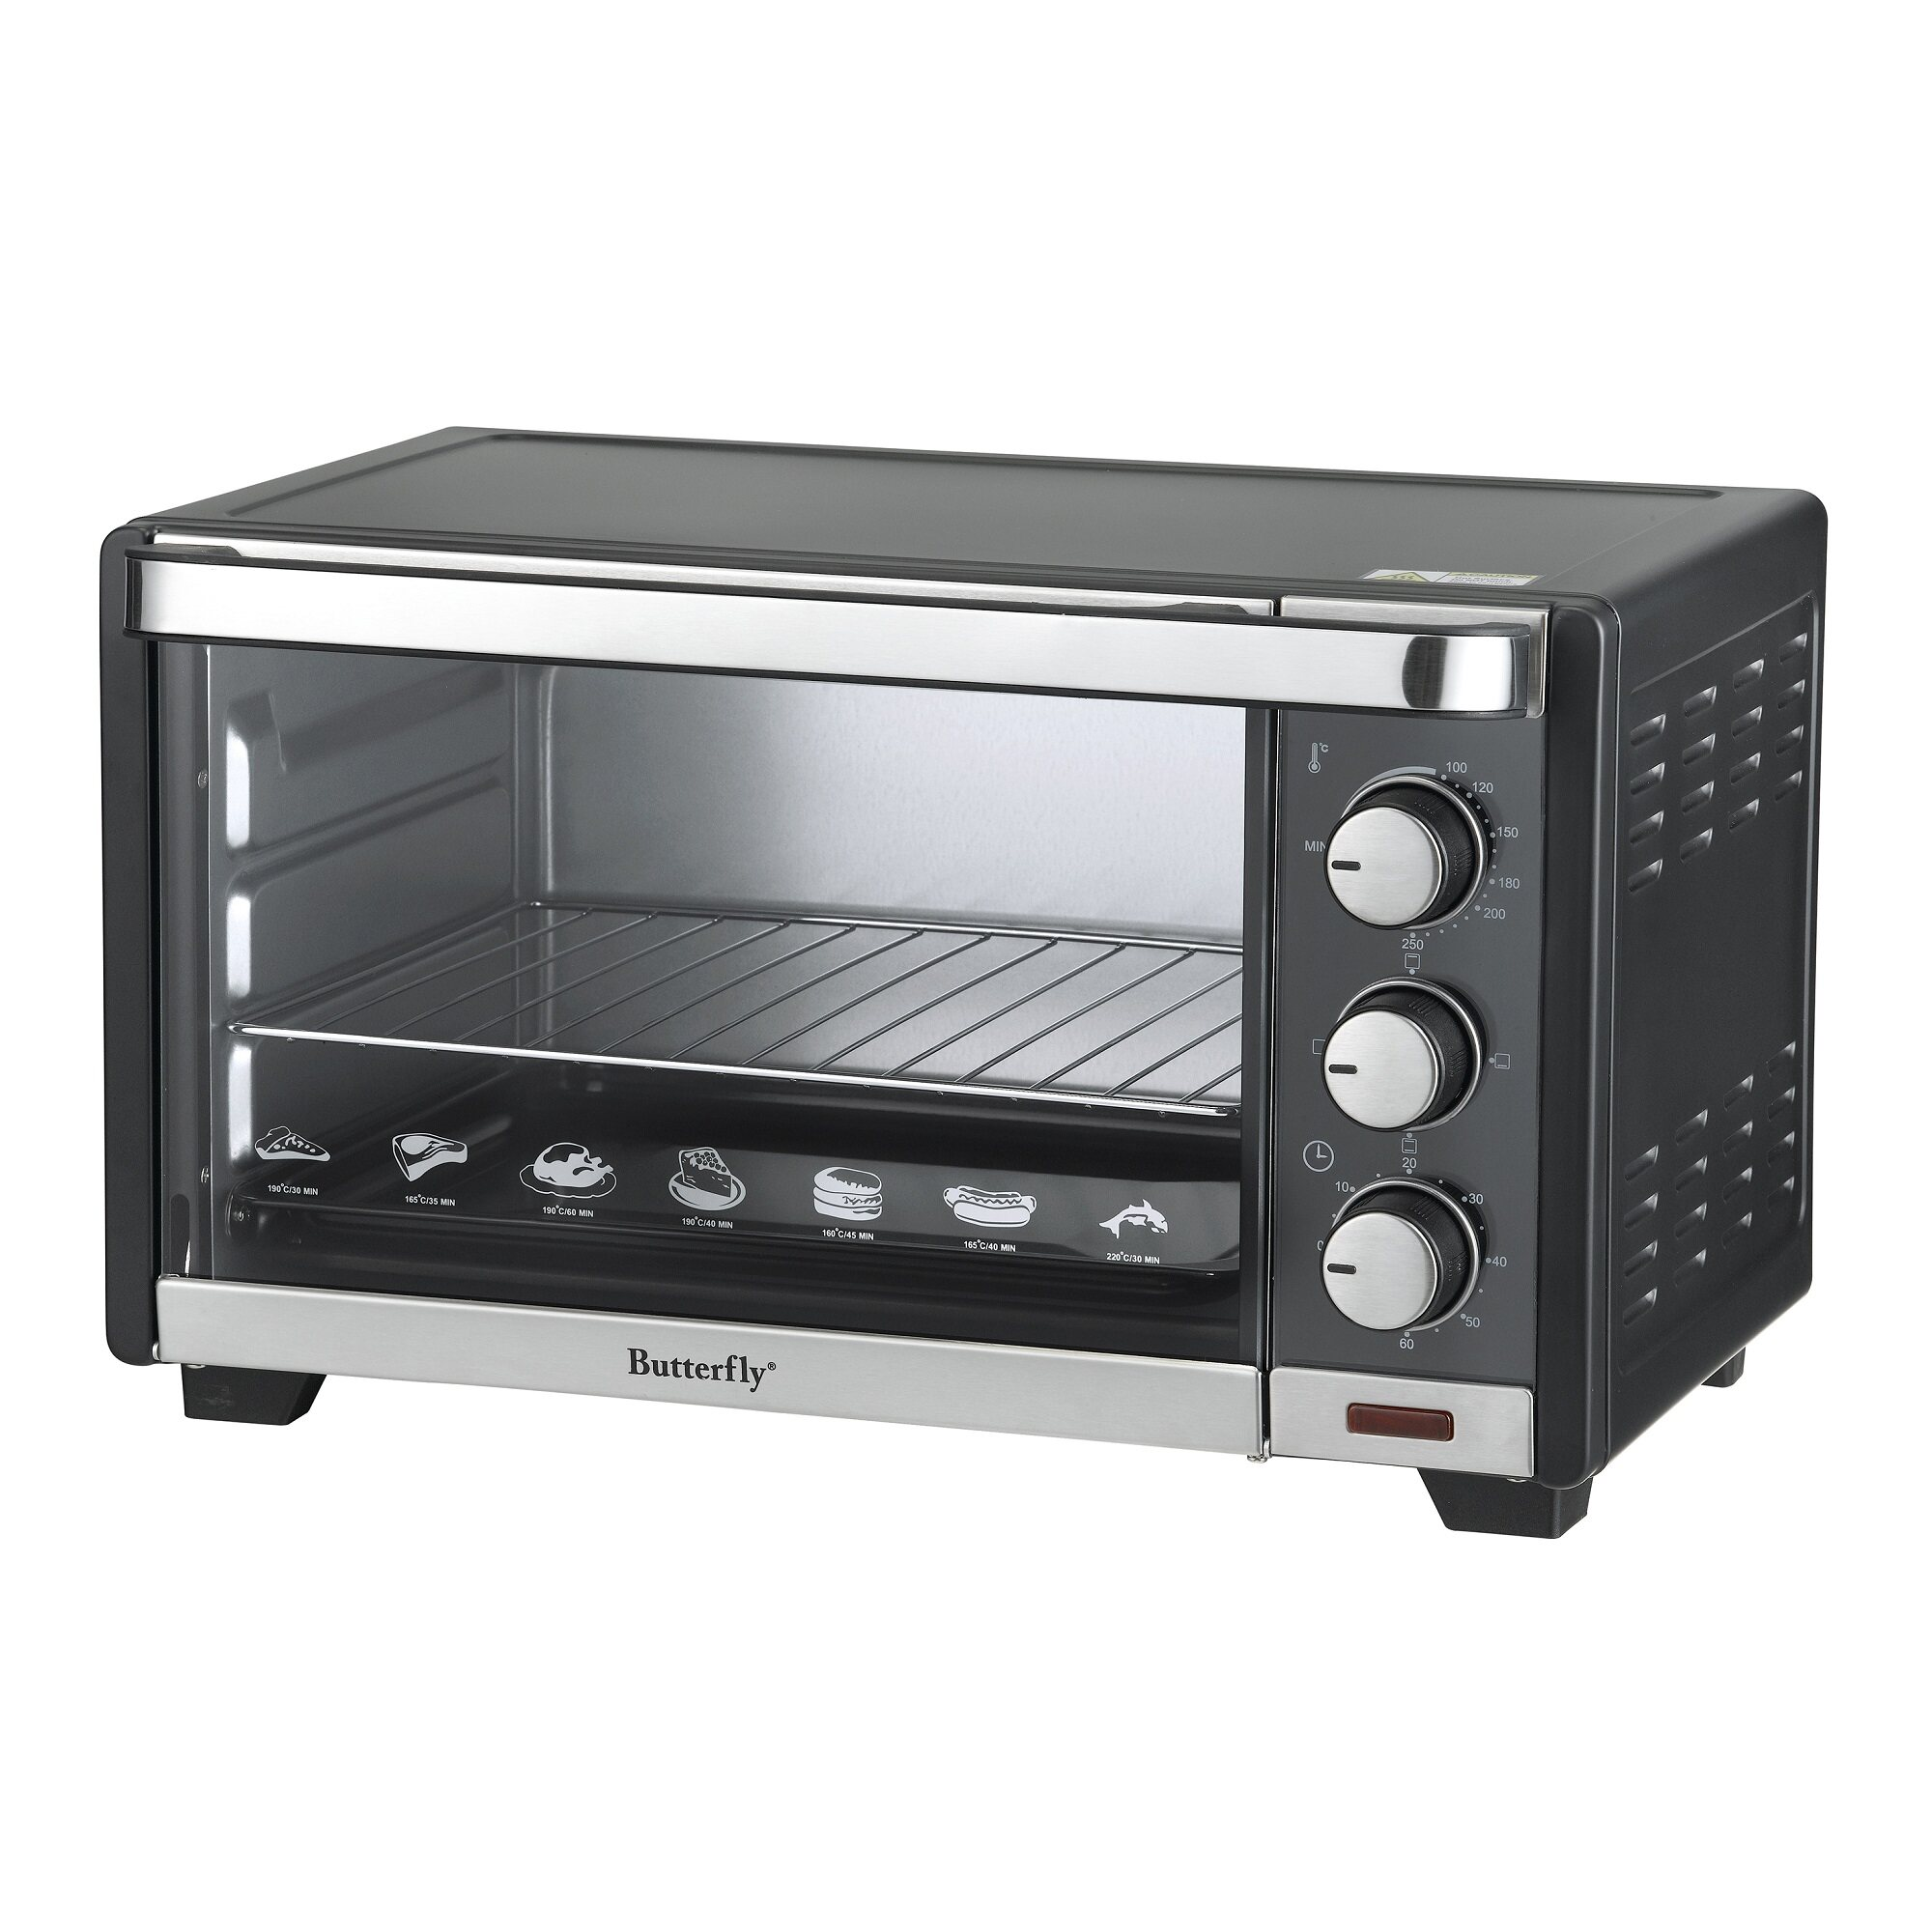 Butterfly Kitchen Appliances Butterfly Beo 1120 Electric Oven 20l Lazada Malaysia